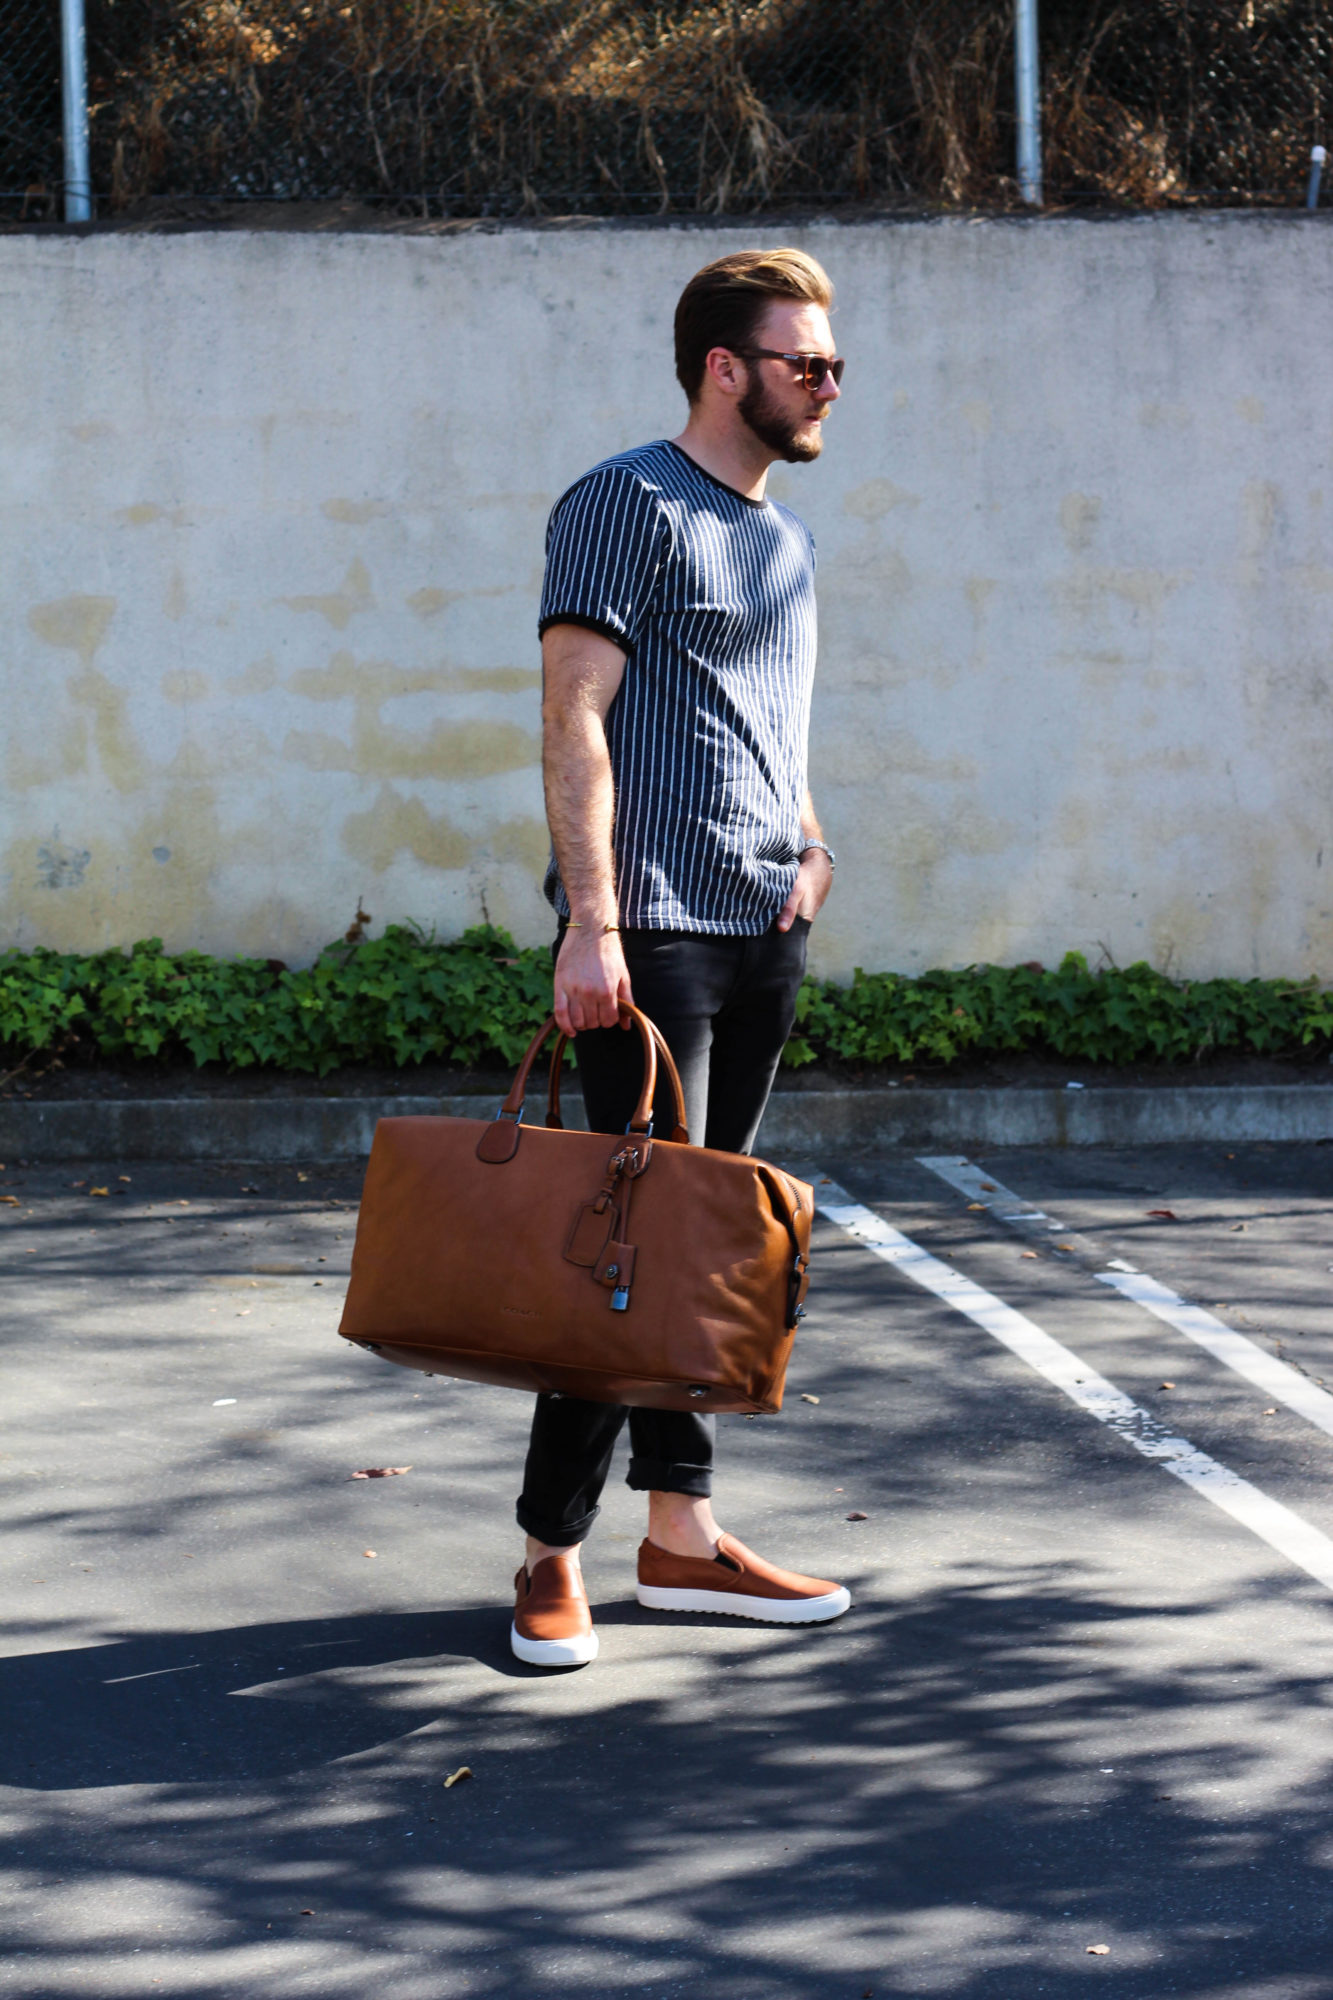 Coach Leather Luggage and Shoes-3